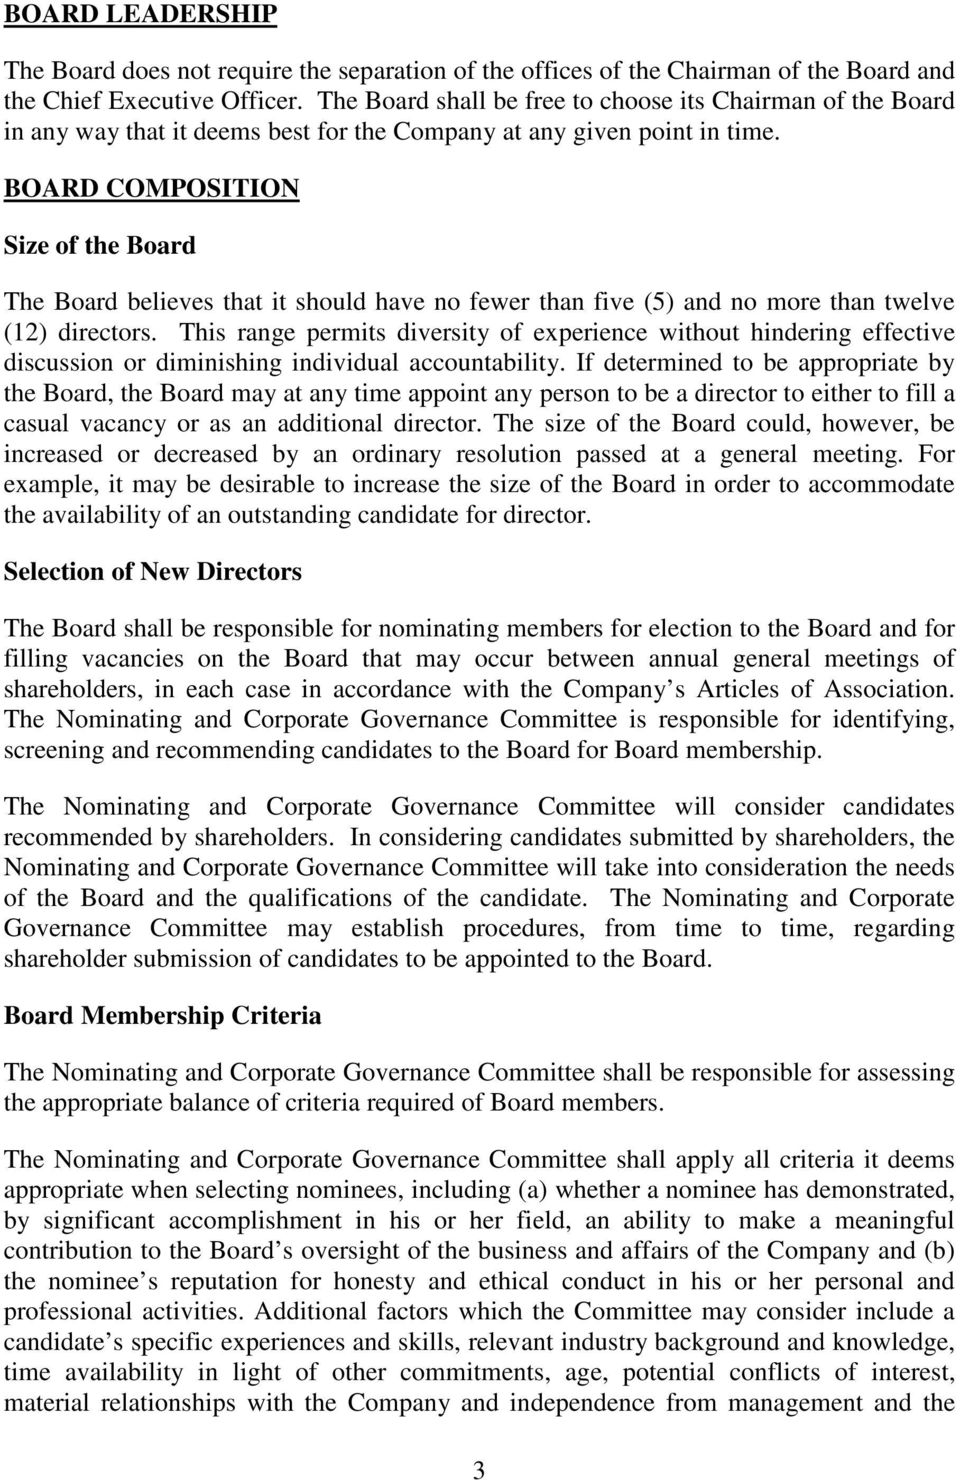 BOARD COMPOSITION Size of the Board The Board believes that it should have no fewer than five (5) and no more than twelve (12) directors.